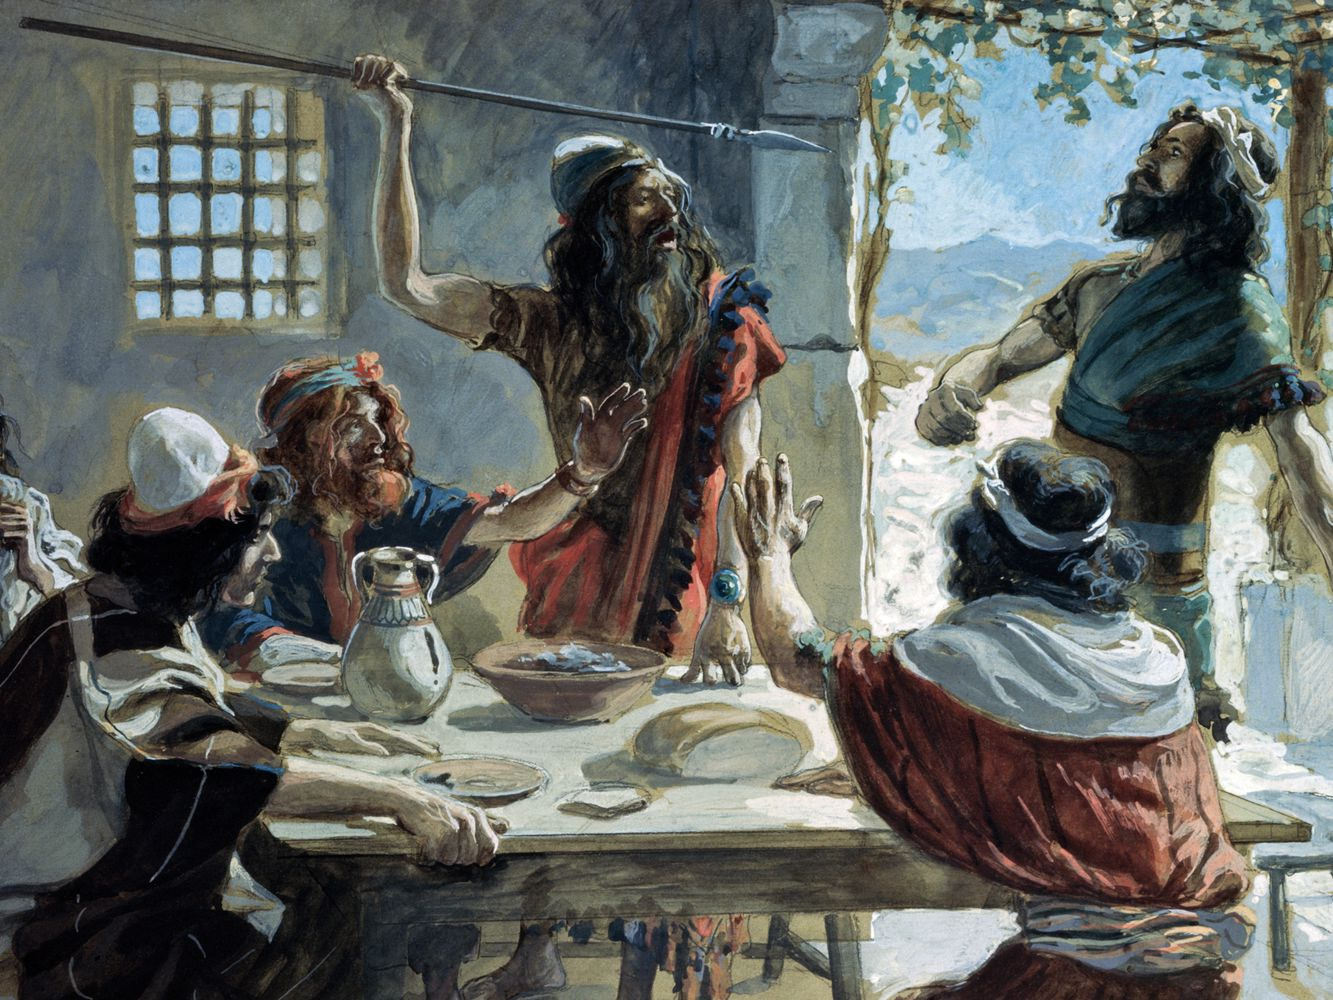 Jonathan in the Bible Was the Best Friend of David